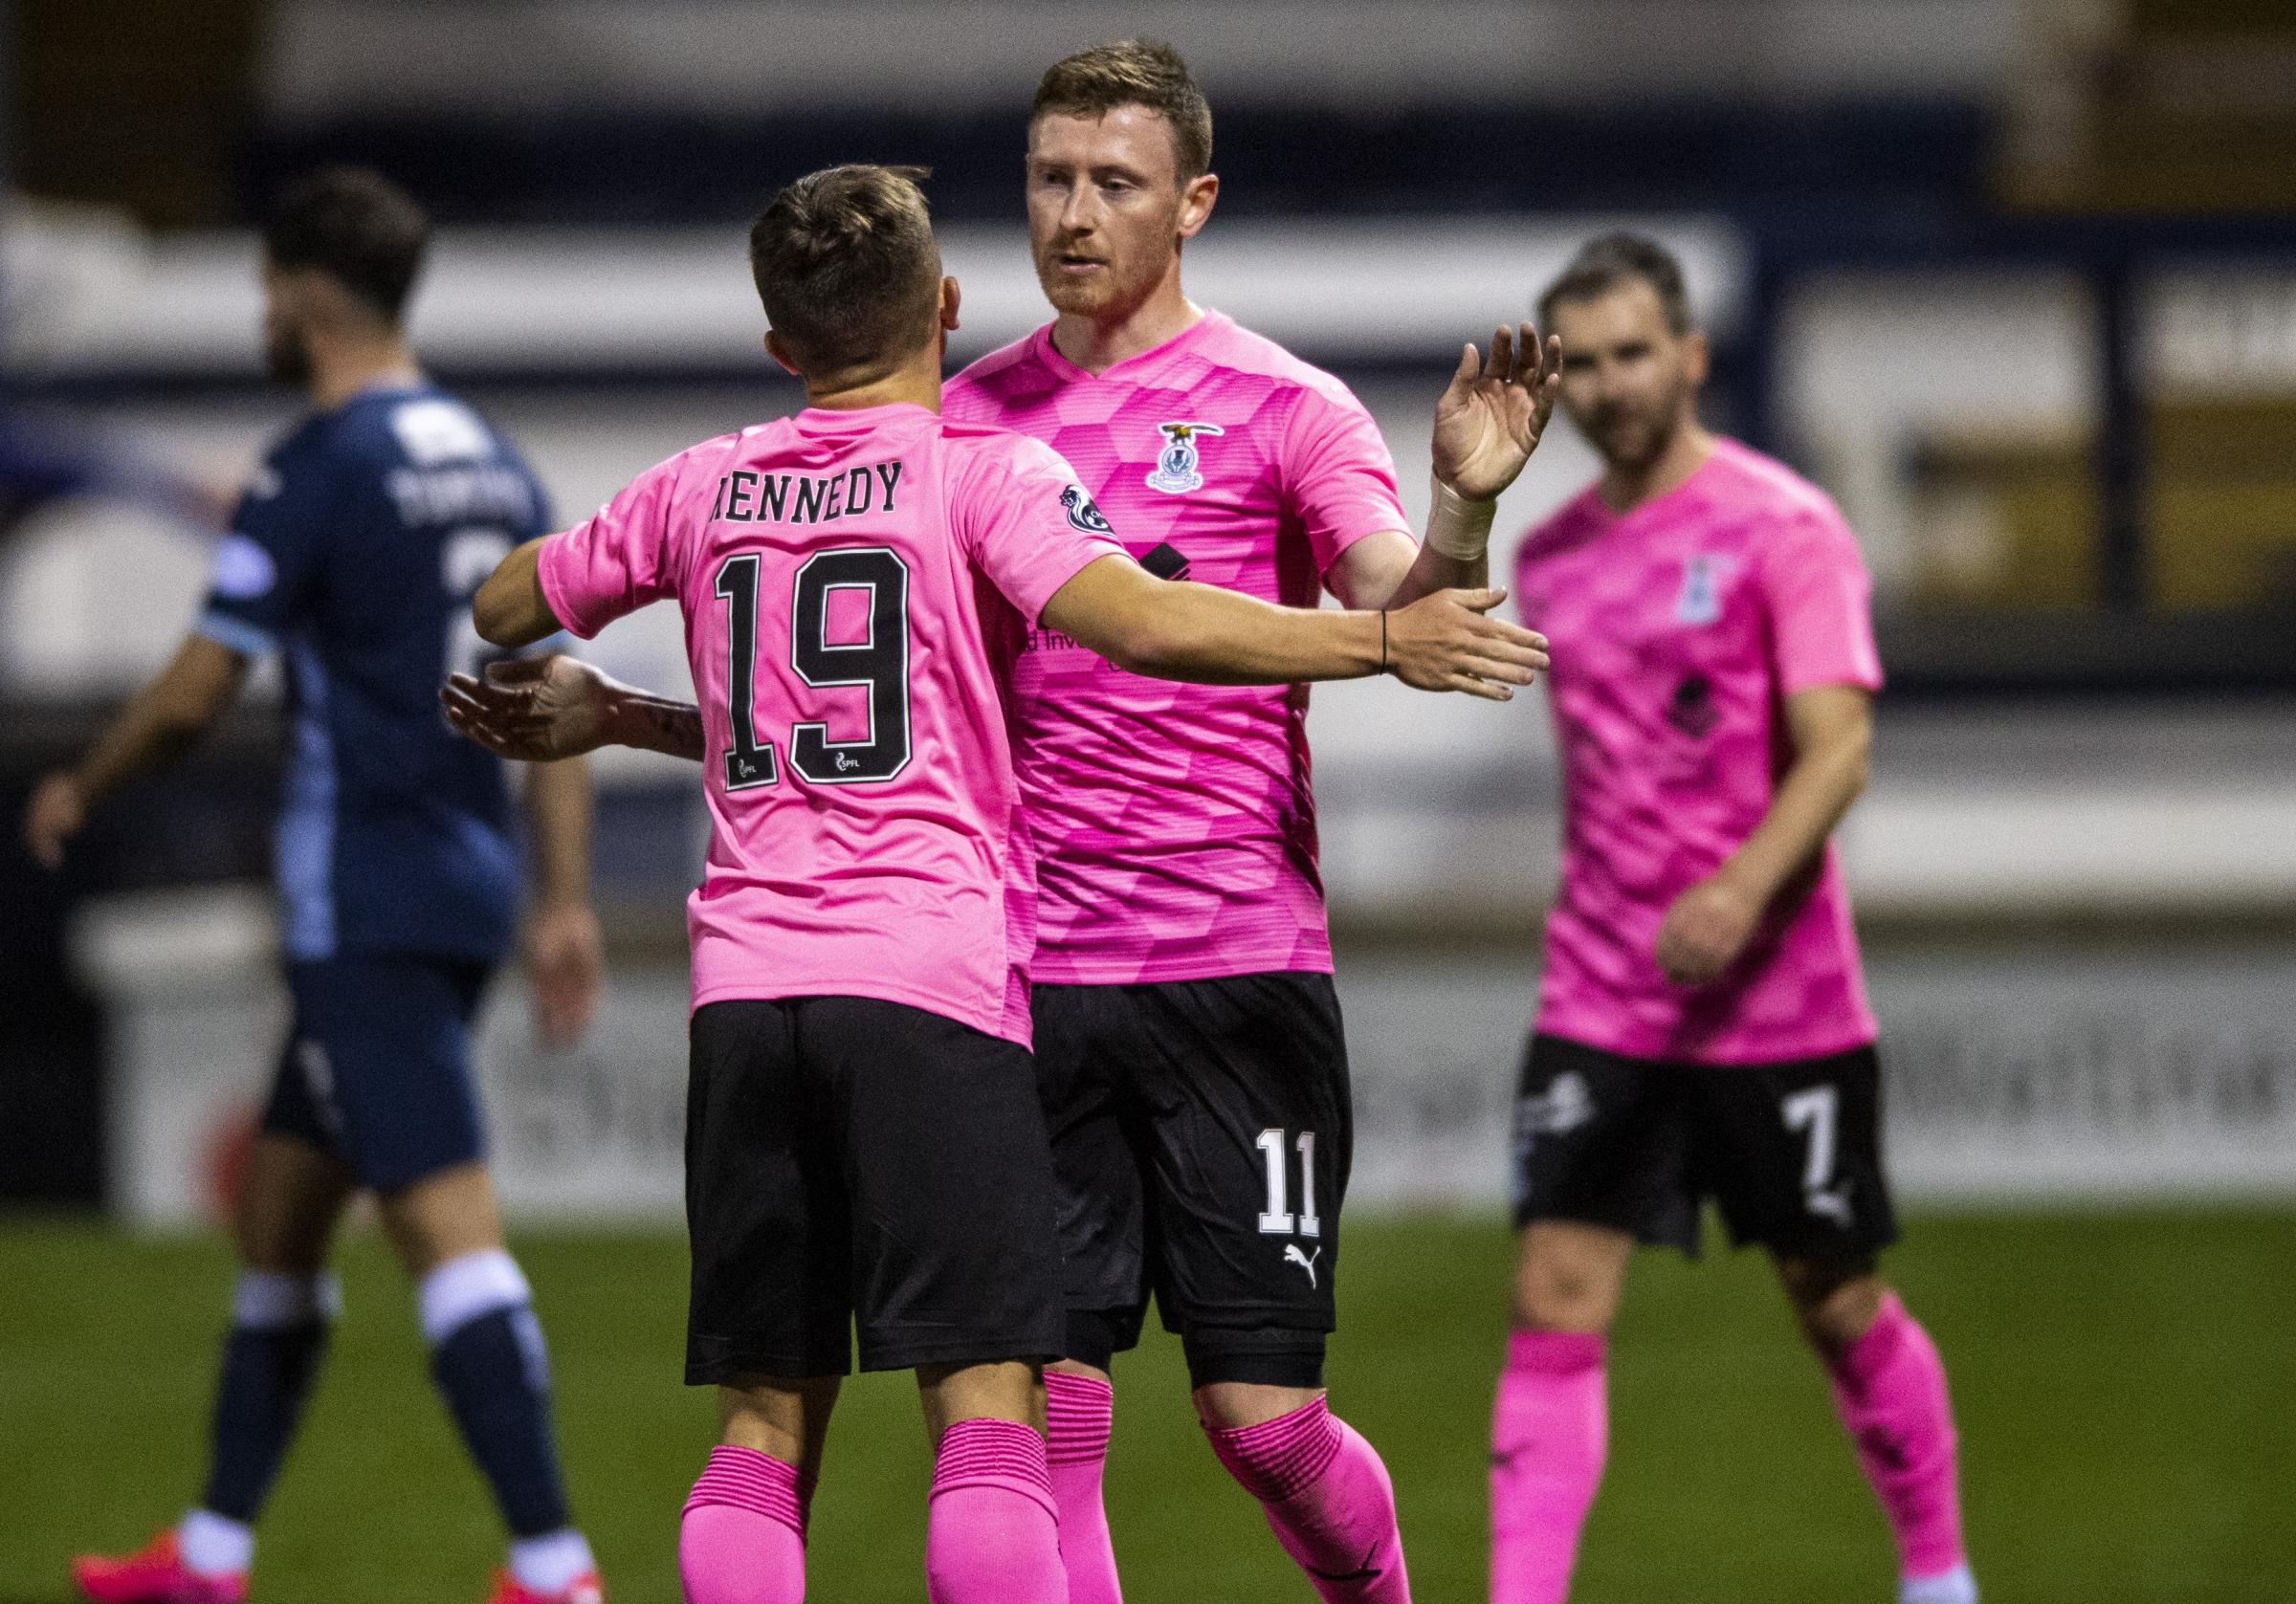 Inverness' Shane Sutherland has a point to prove against Queen of the South